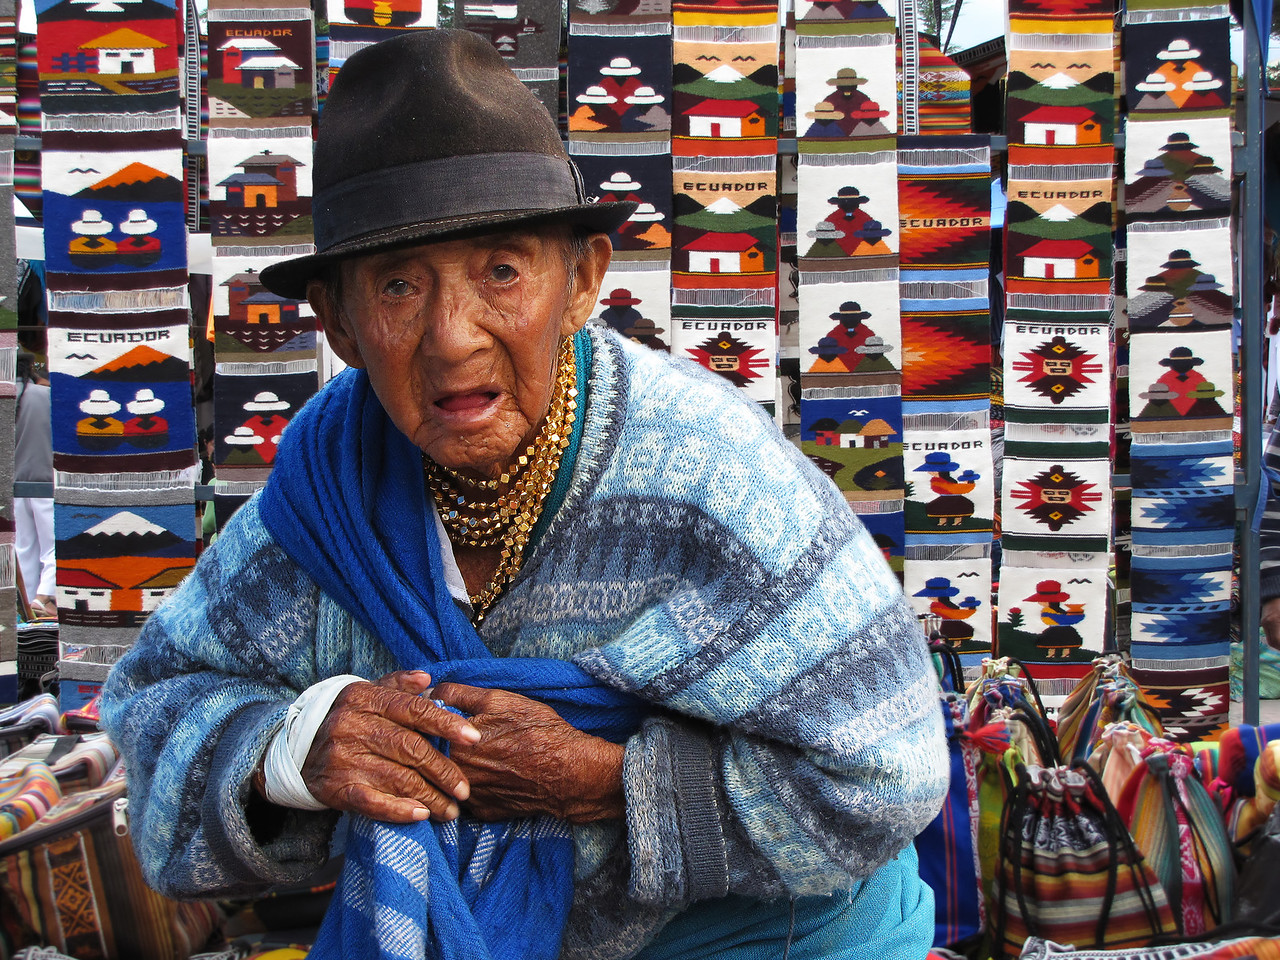 DOWN AND OUT IN OTAVALO - ECUADOR